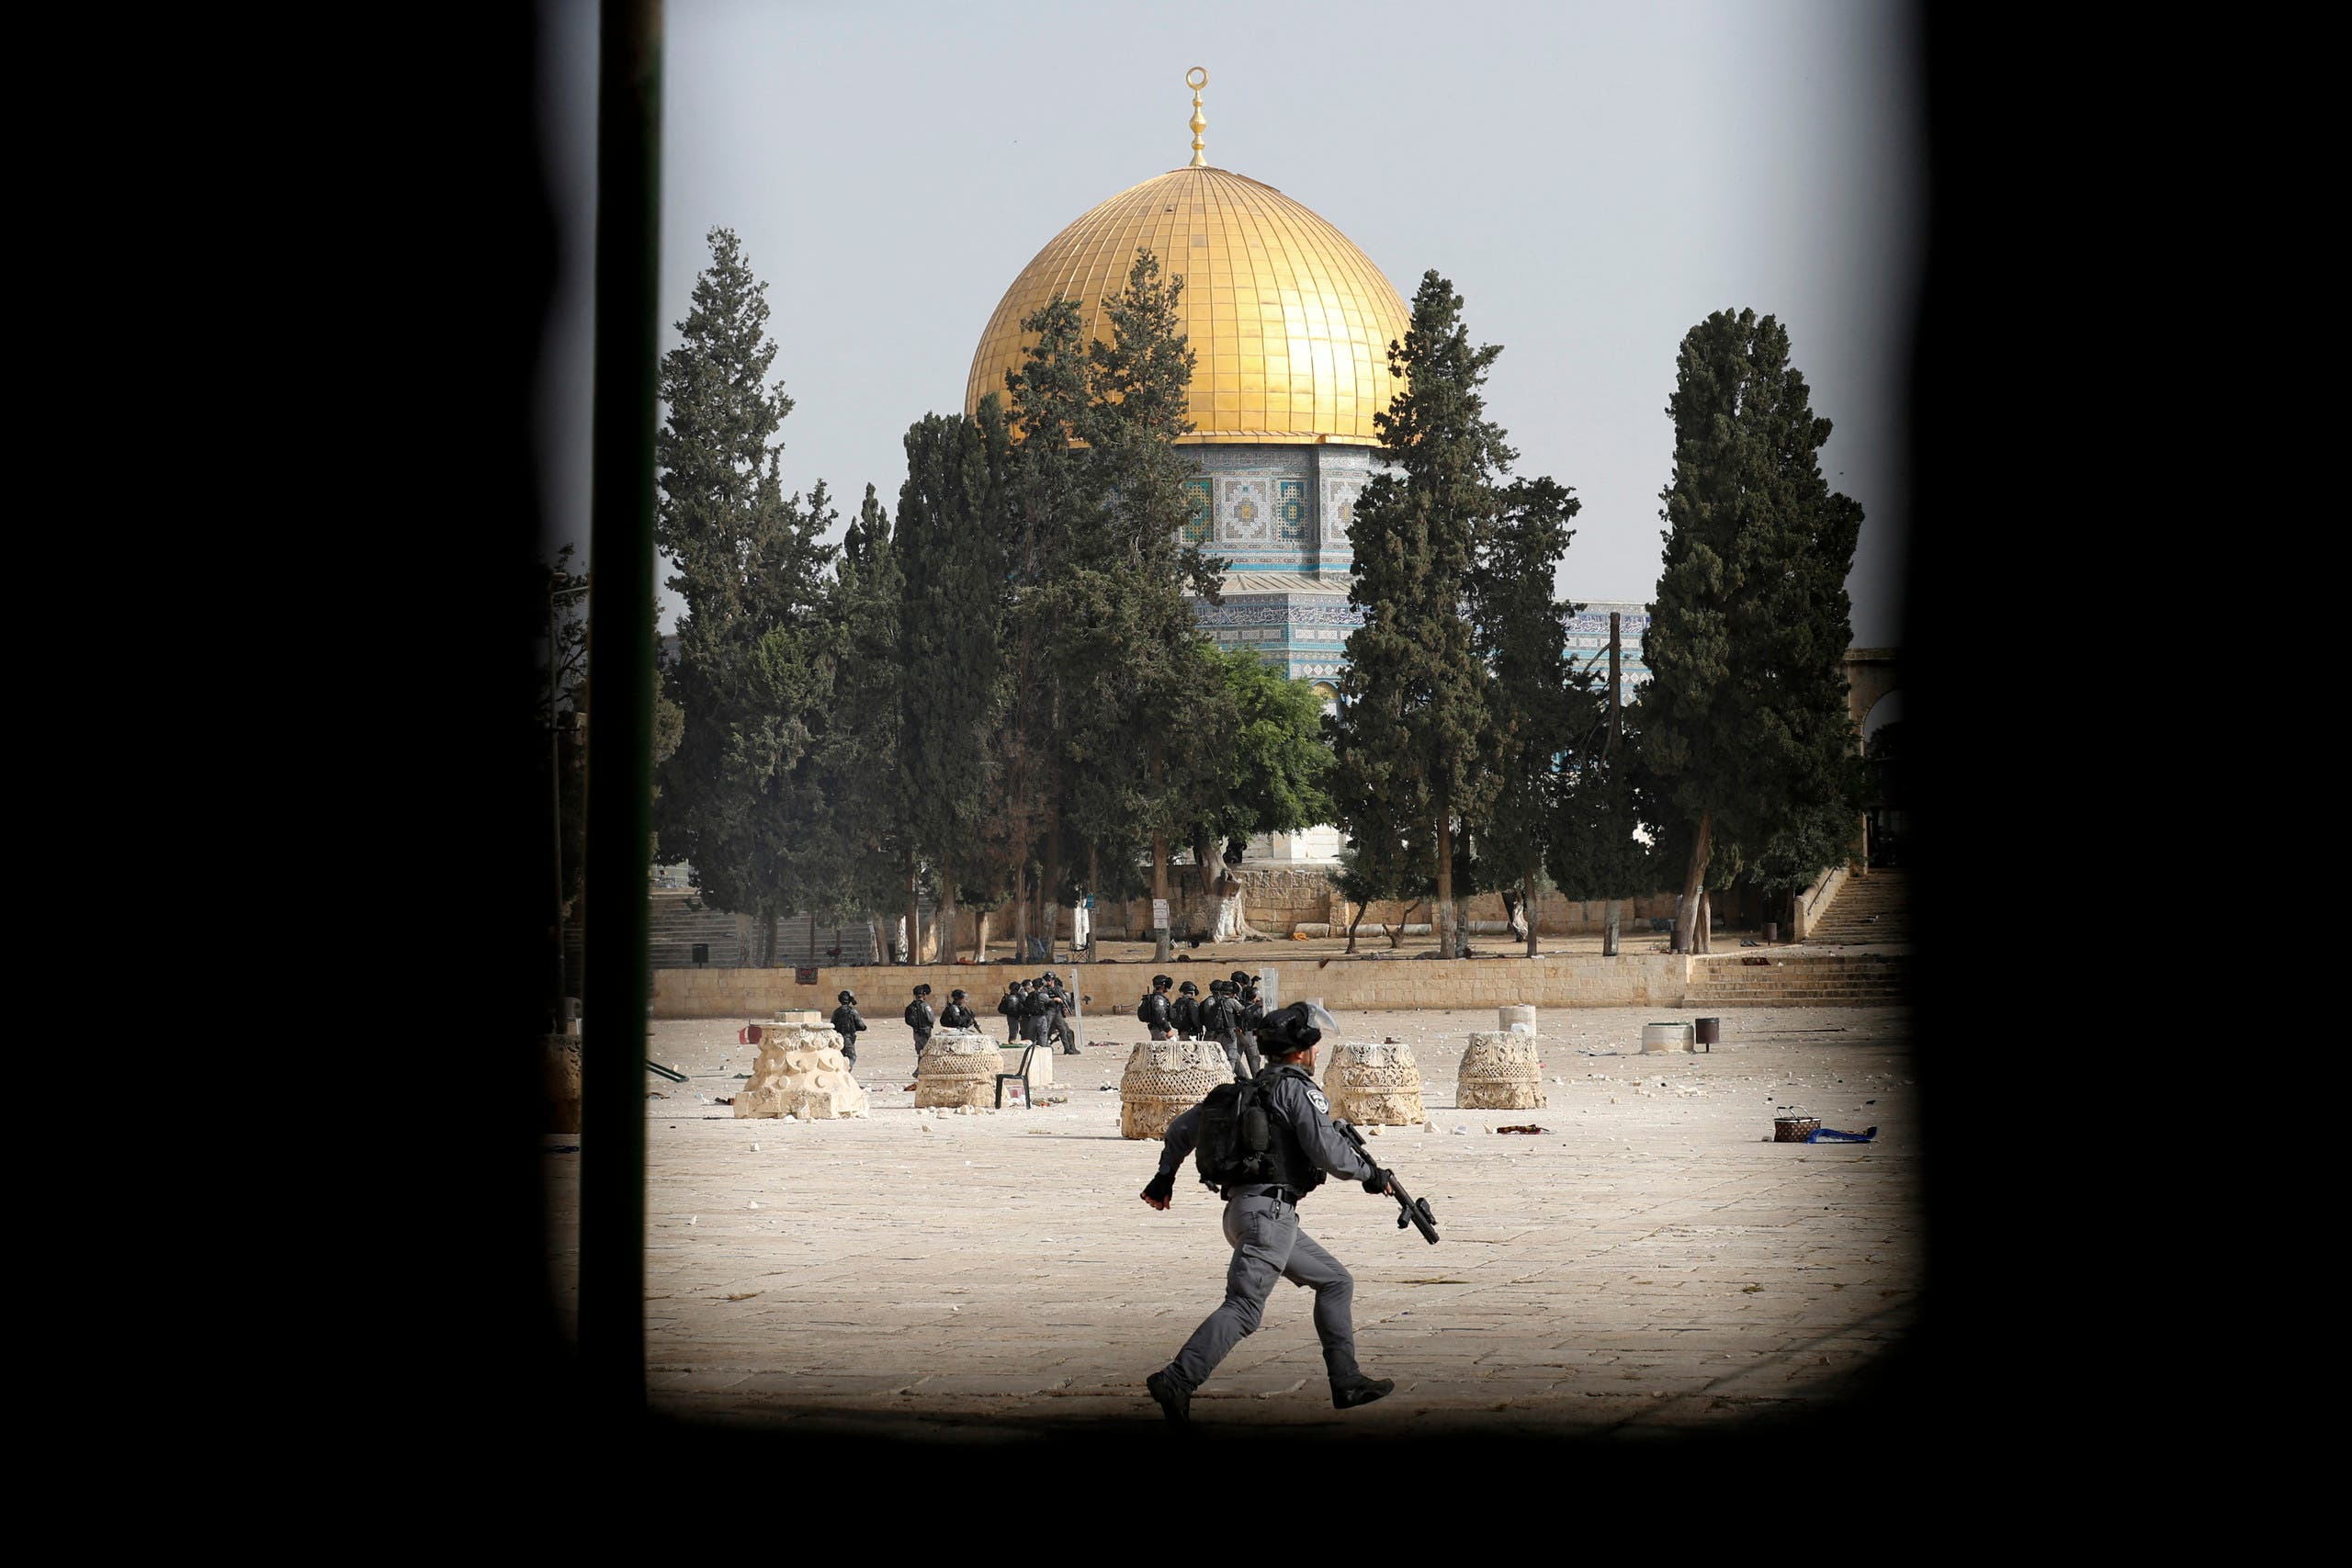 Israeli security forces deploy amid clashes with Palestinians at Jerusalem's Al-Aqsa mosque compound on May 10, 2021, ahead of a planned march to commemorate Israel's takeover of Jerusalem in the 1967 Six-Day War. (AFP)